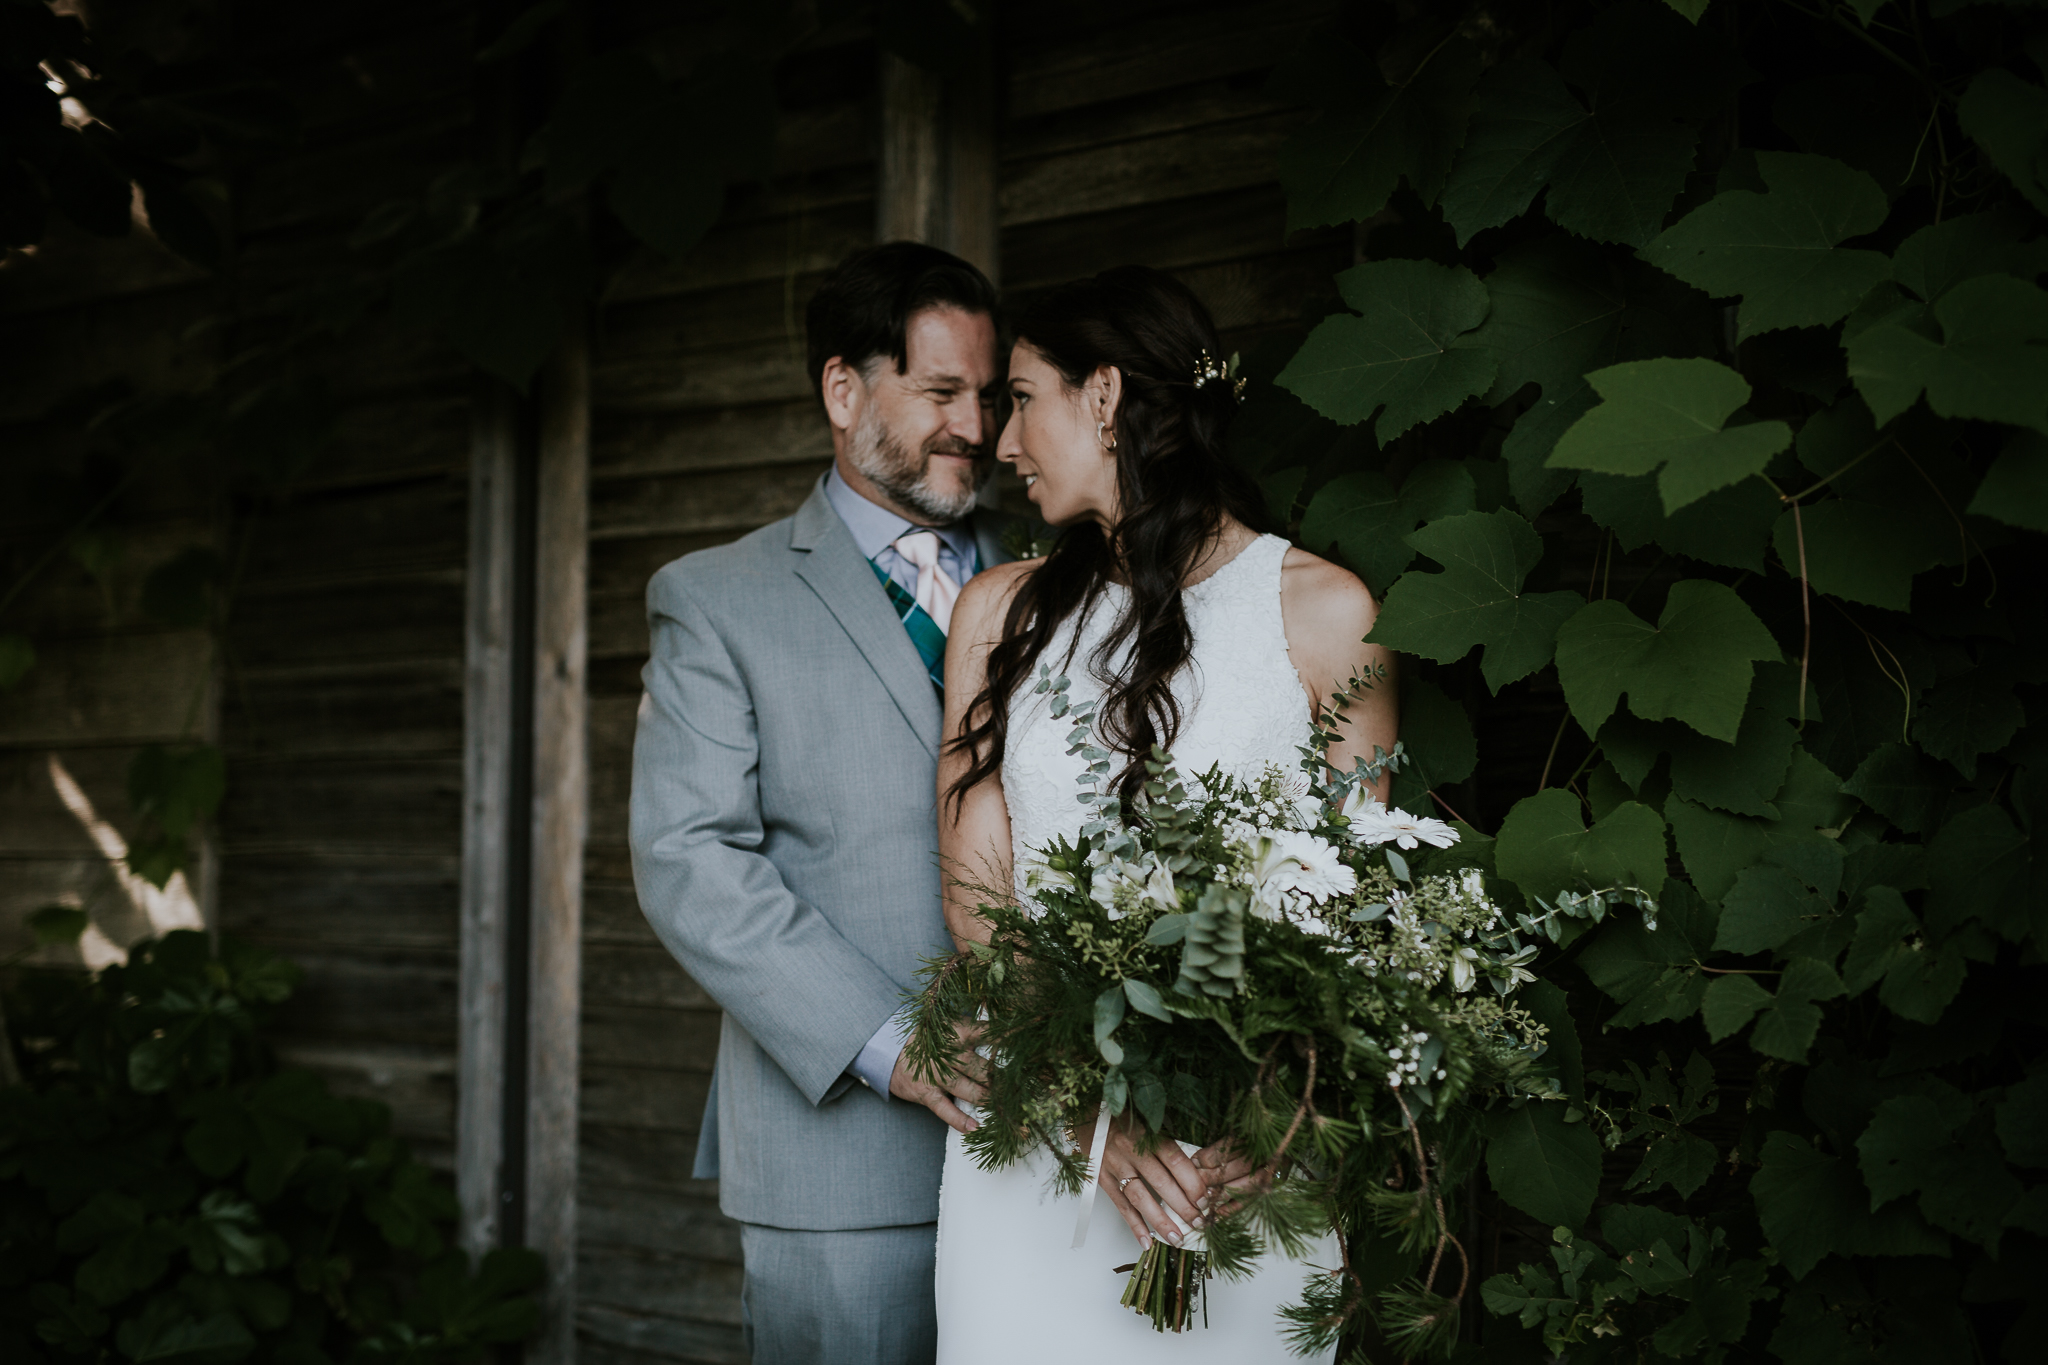 Bride and groom kissing near hydrangeas at Starling Lane winery wedding venue